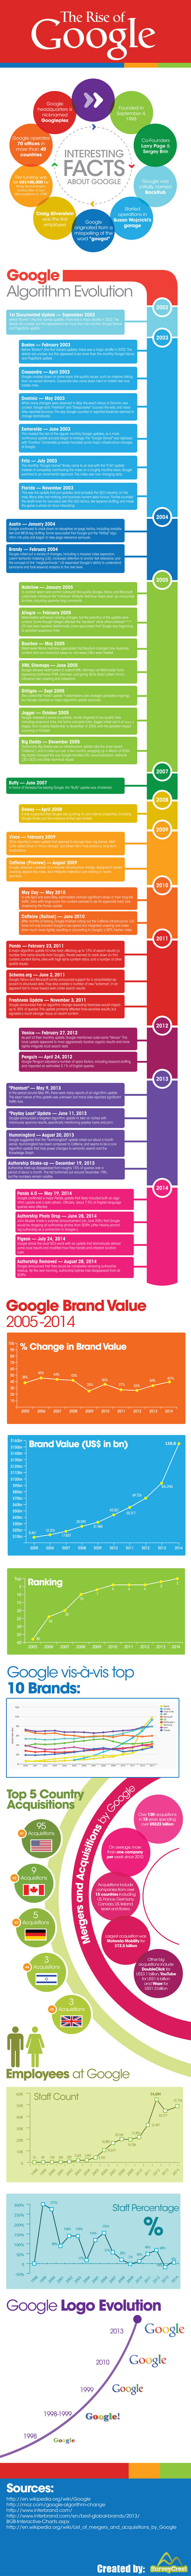 The Rise of Mighty #Google - #infographic